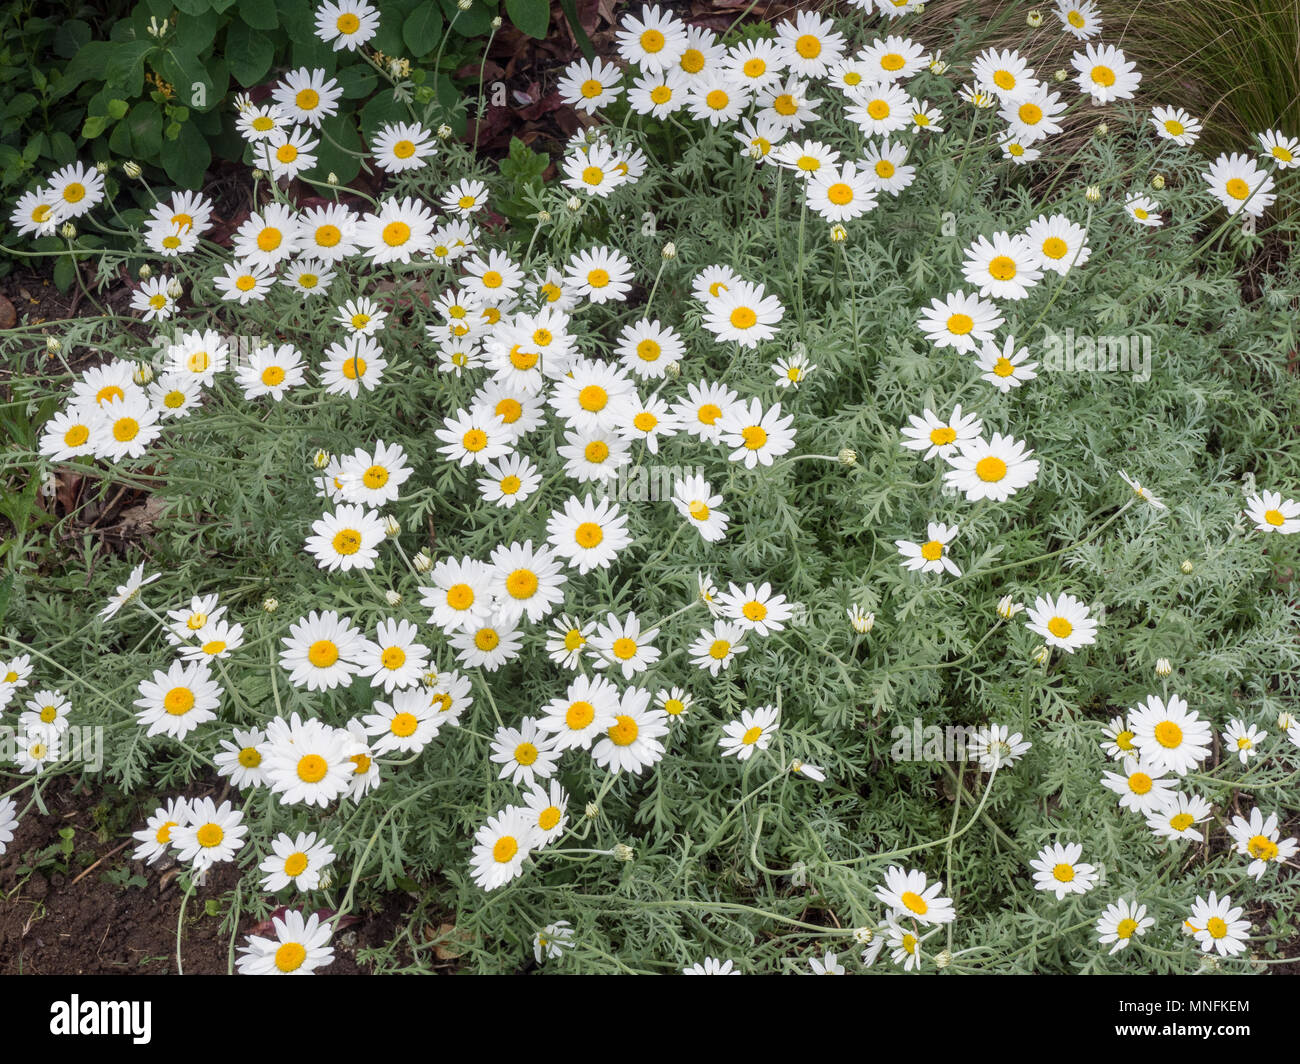 The white daisy flowers and silver foliage of Anthemis punctata cupaniana - Stock Image